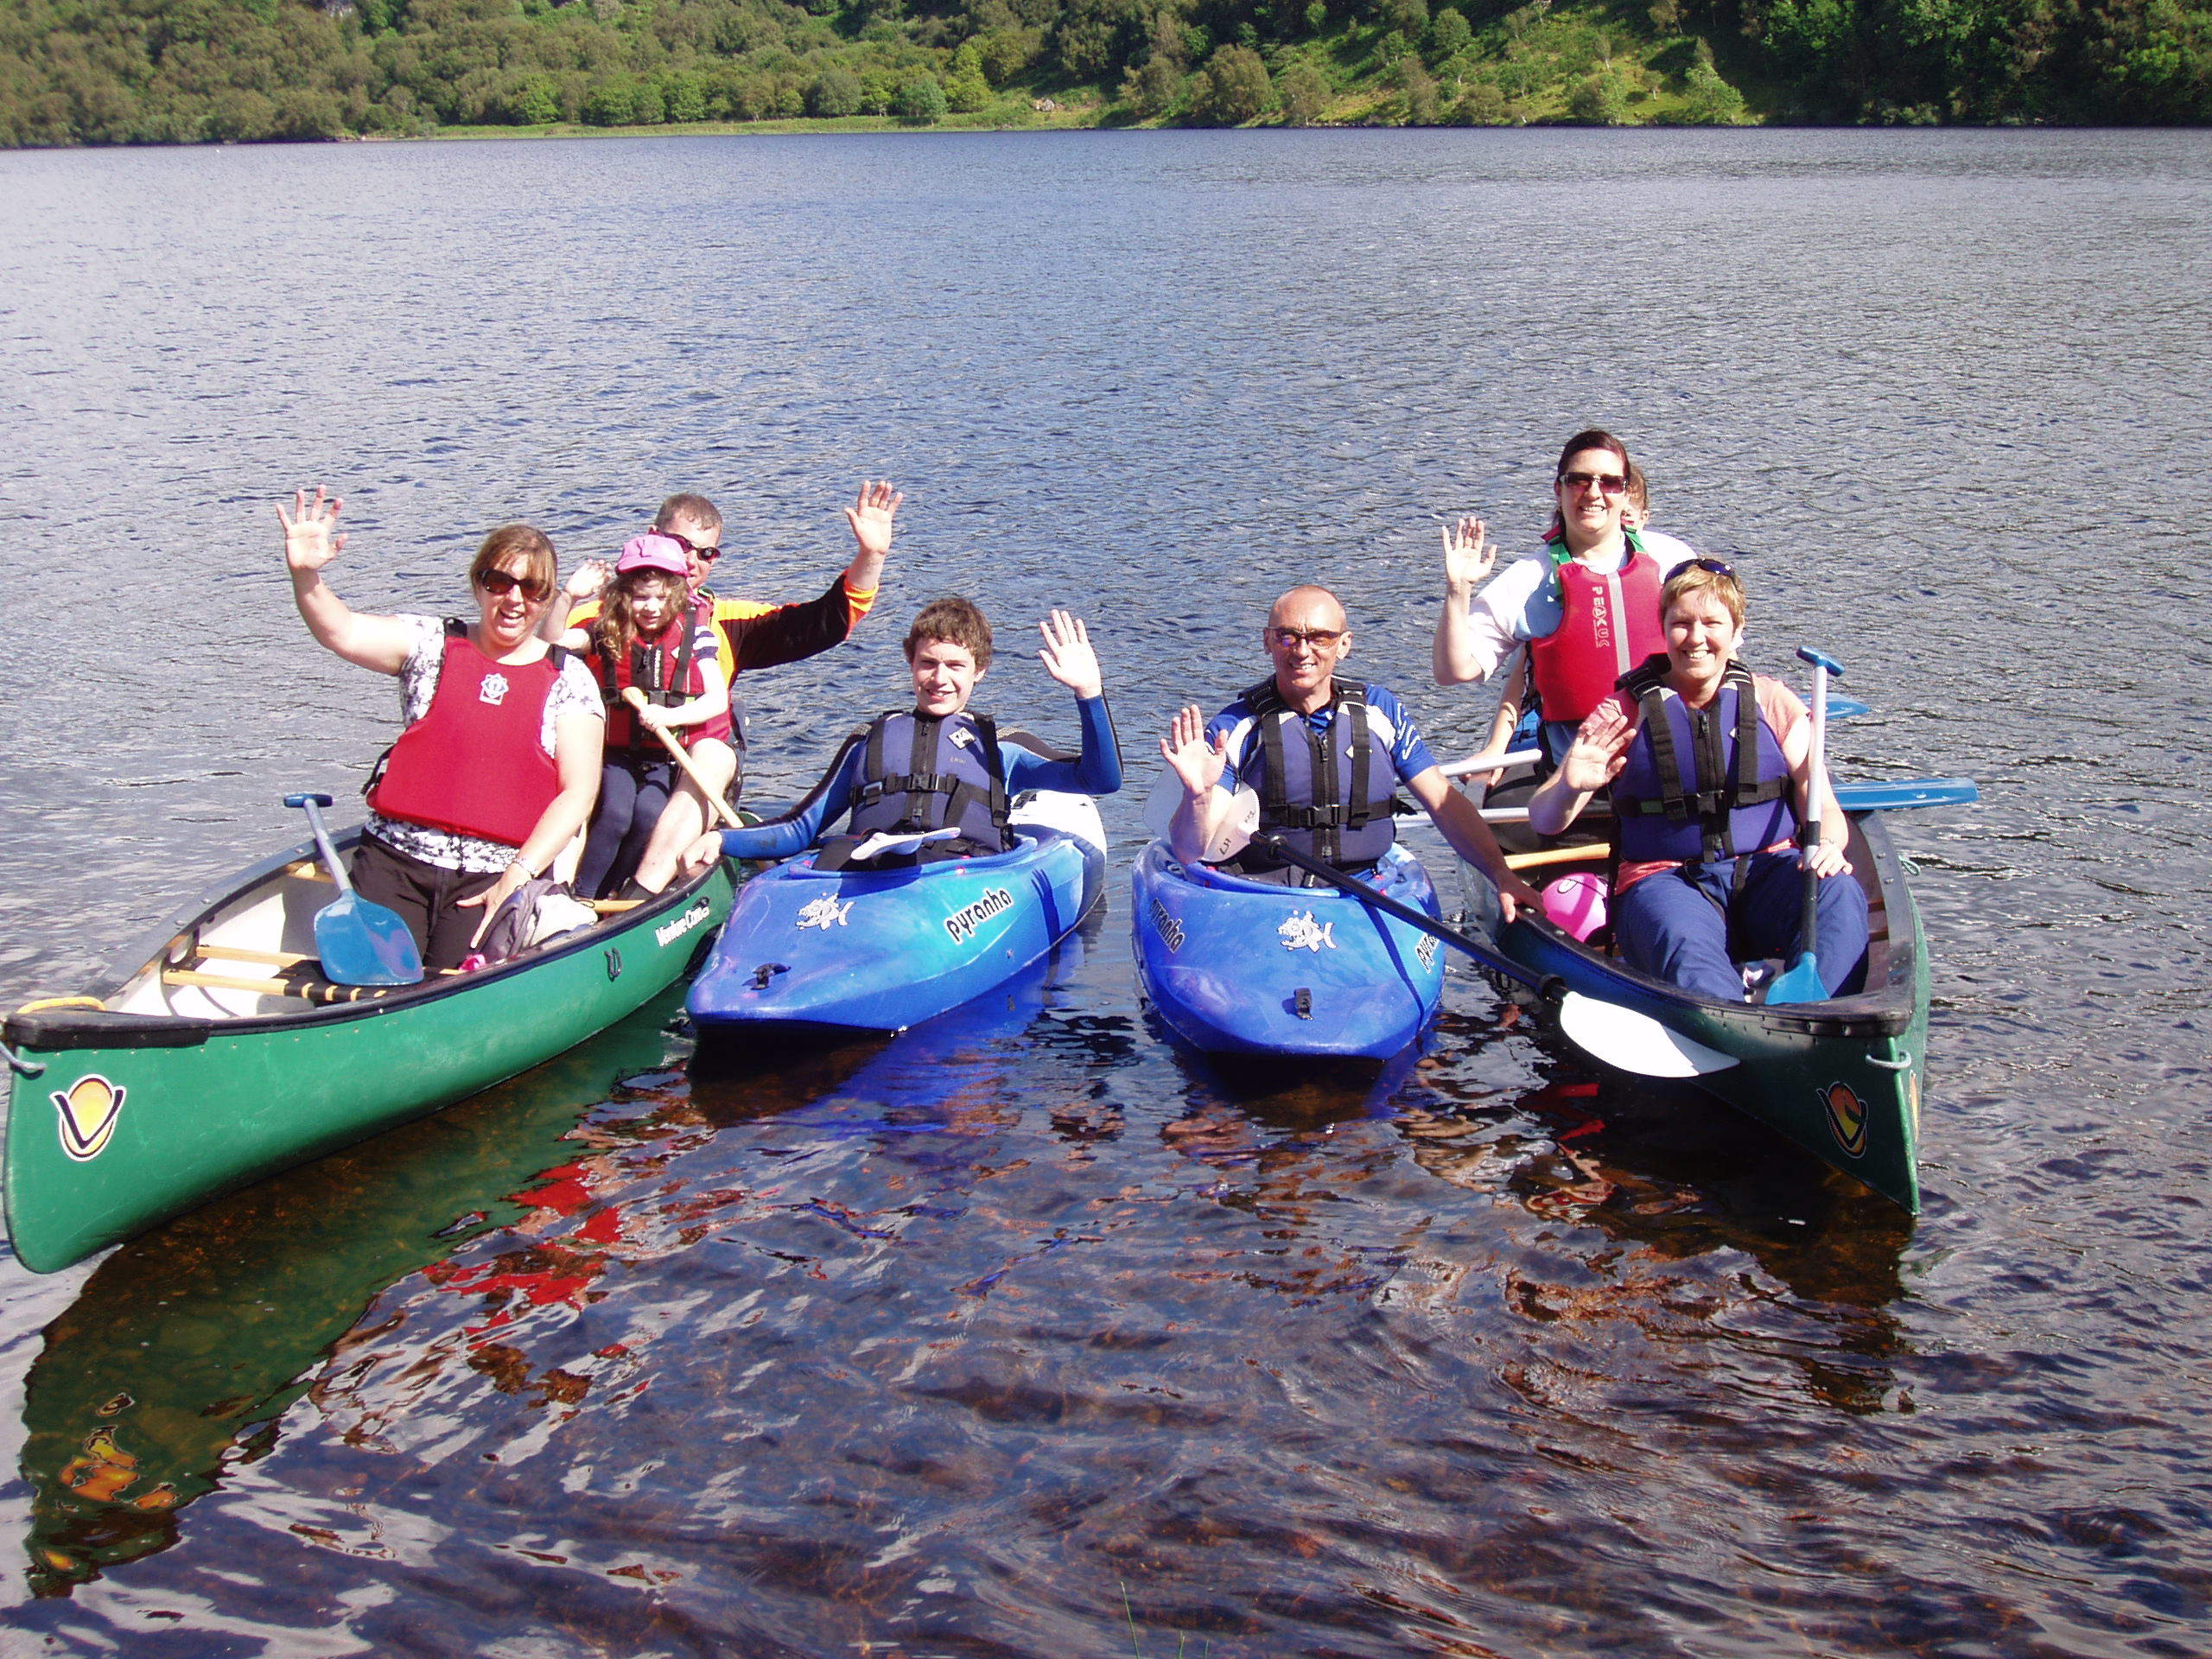 Loch Neil Canoeing. Photo courtesy and copyright of Stramash.